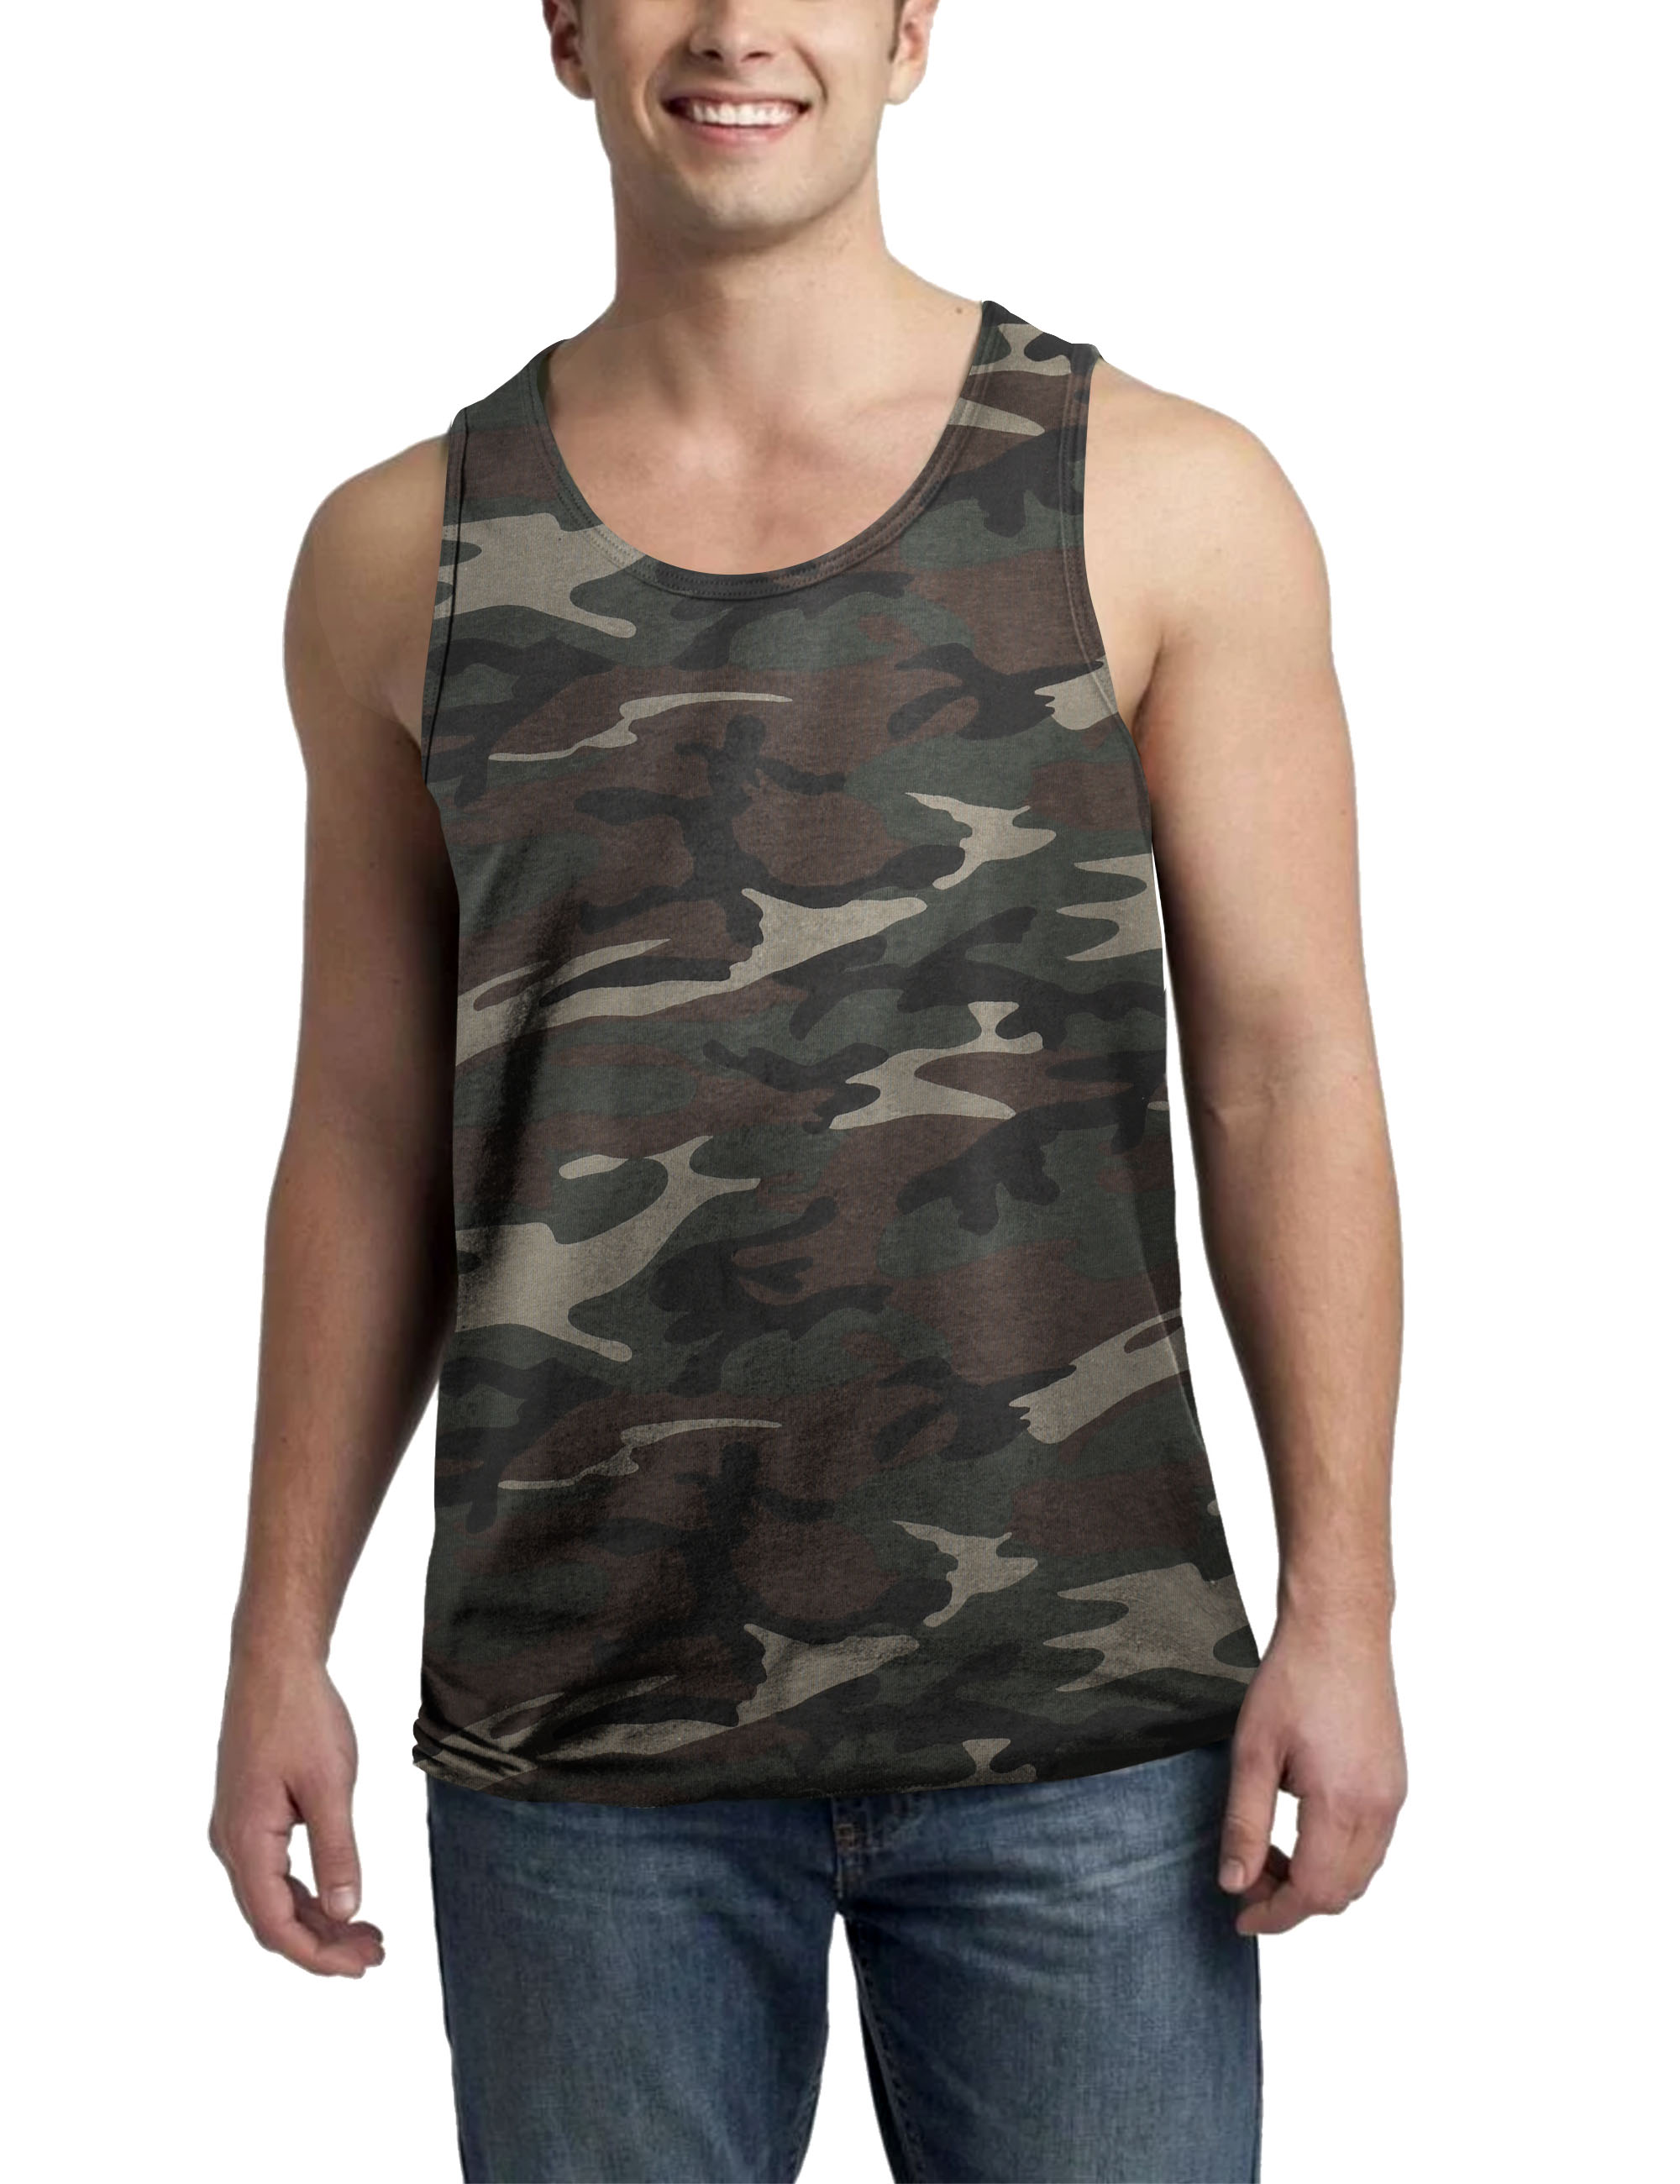 Mens Tank Top Muscle Fit Active Exercise Sleeveless Shirt